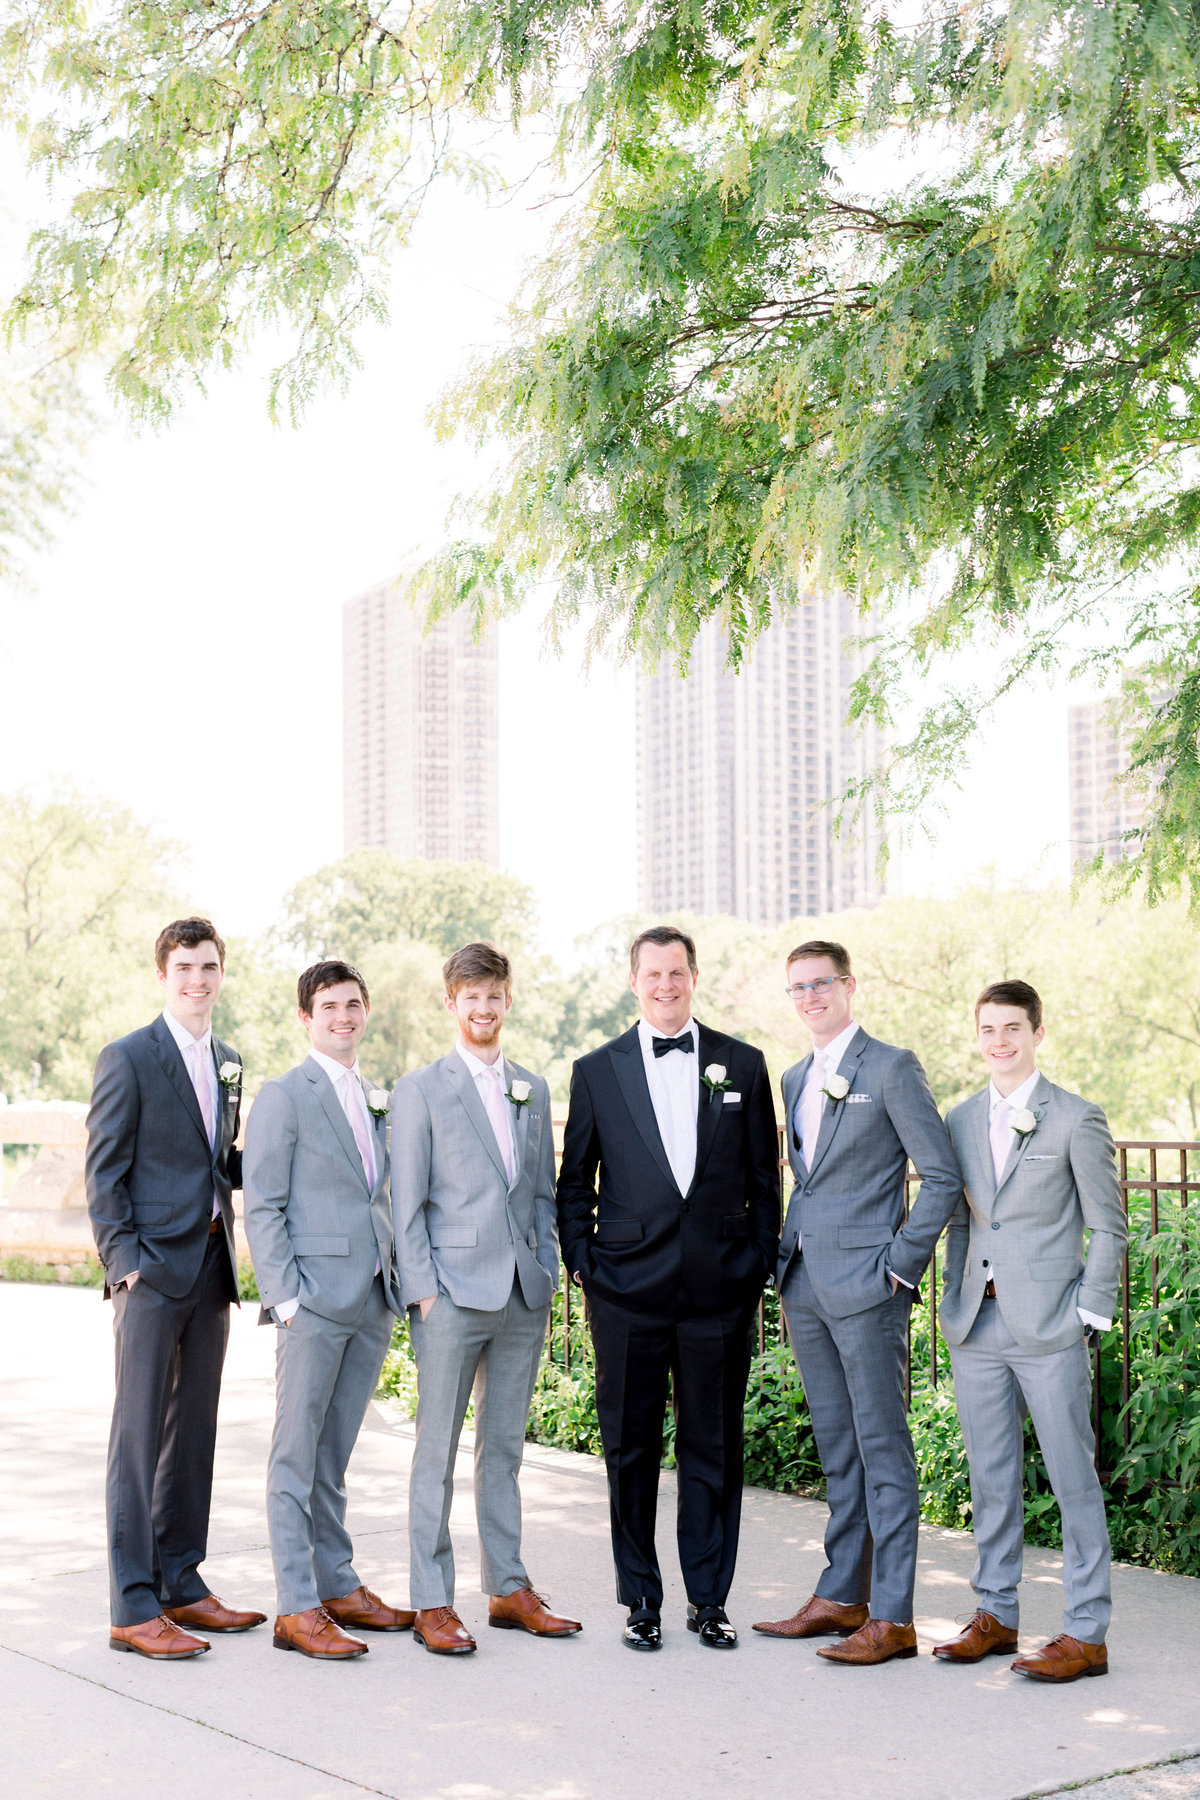 TiffaneyChildsPhotography-ChicagoWeddingPhotographer-Christine+Patrick-MundeleinAuditoriumWedding-FamilyFormals-26